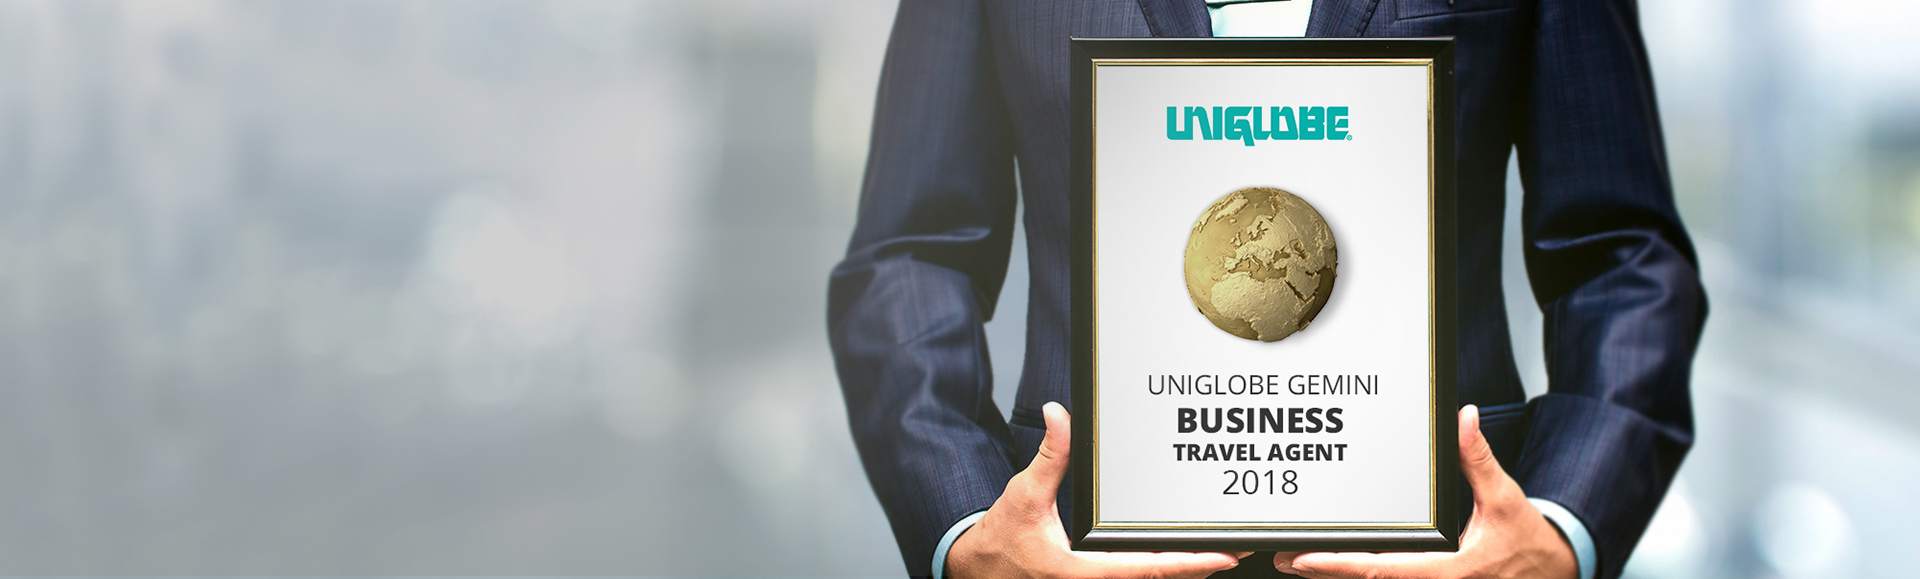 uniglobe gemini business travel agent image